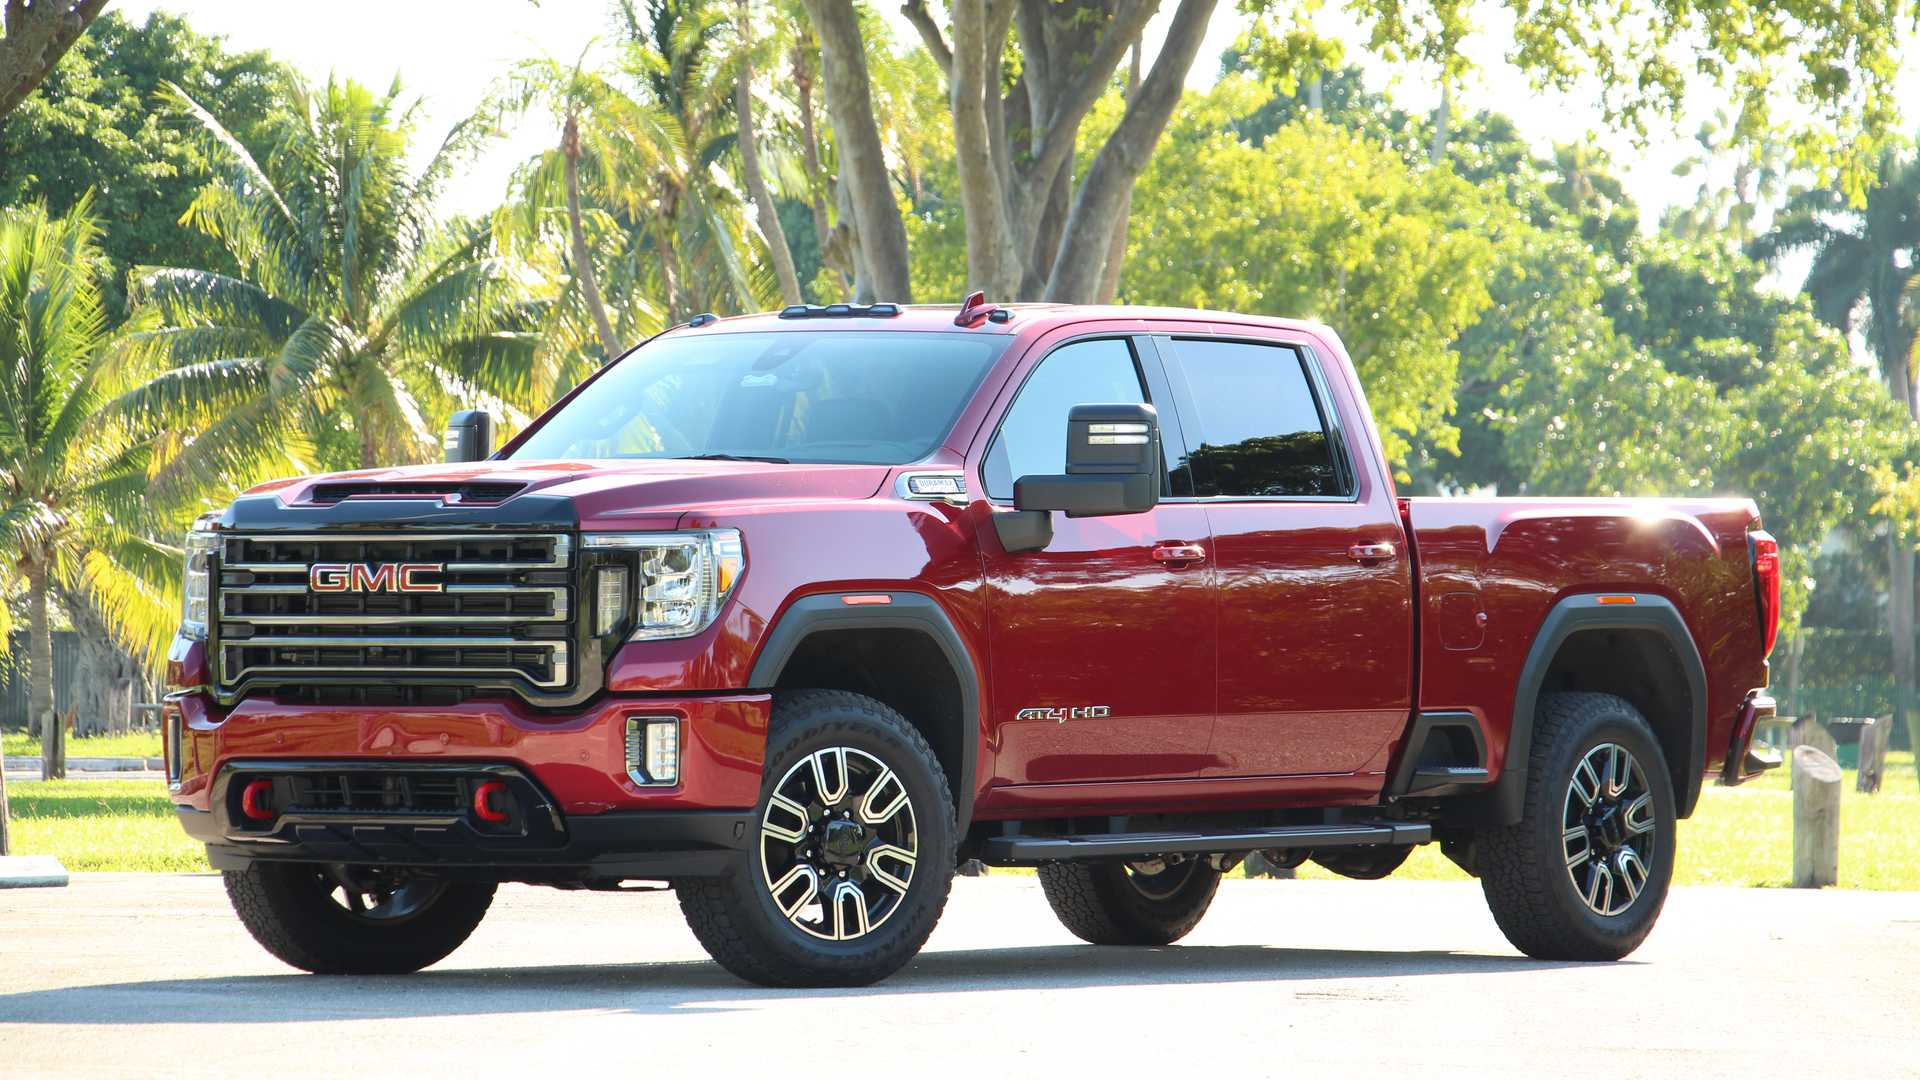 2020 Gmc Sierra 2500 At4 Diesel Review Rugged But Unrefined